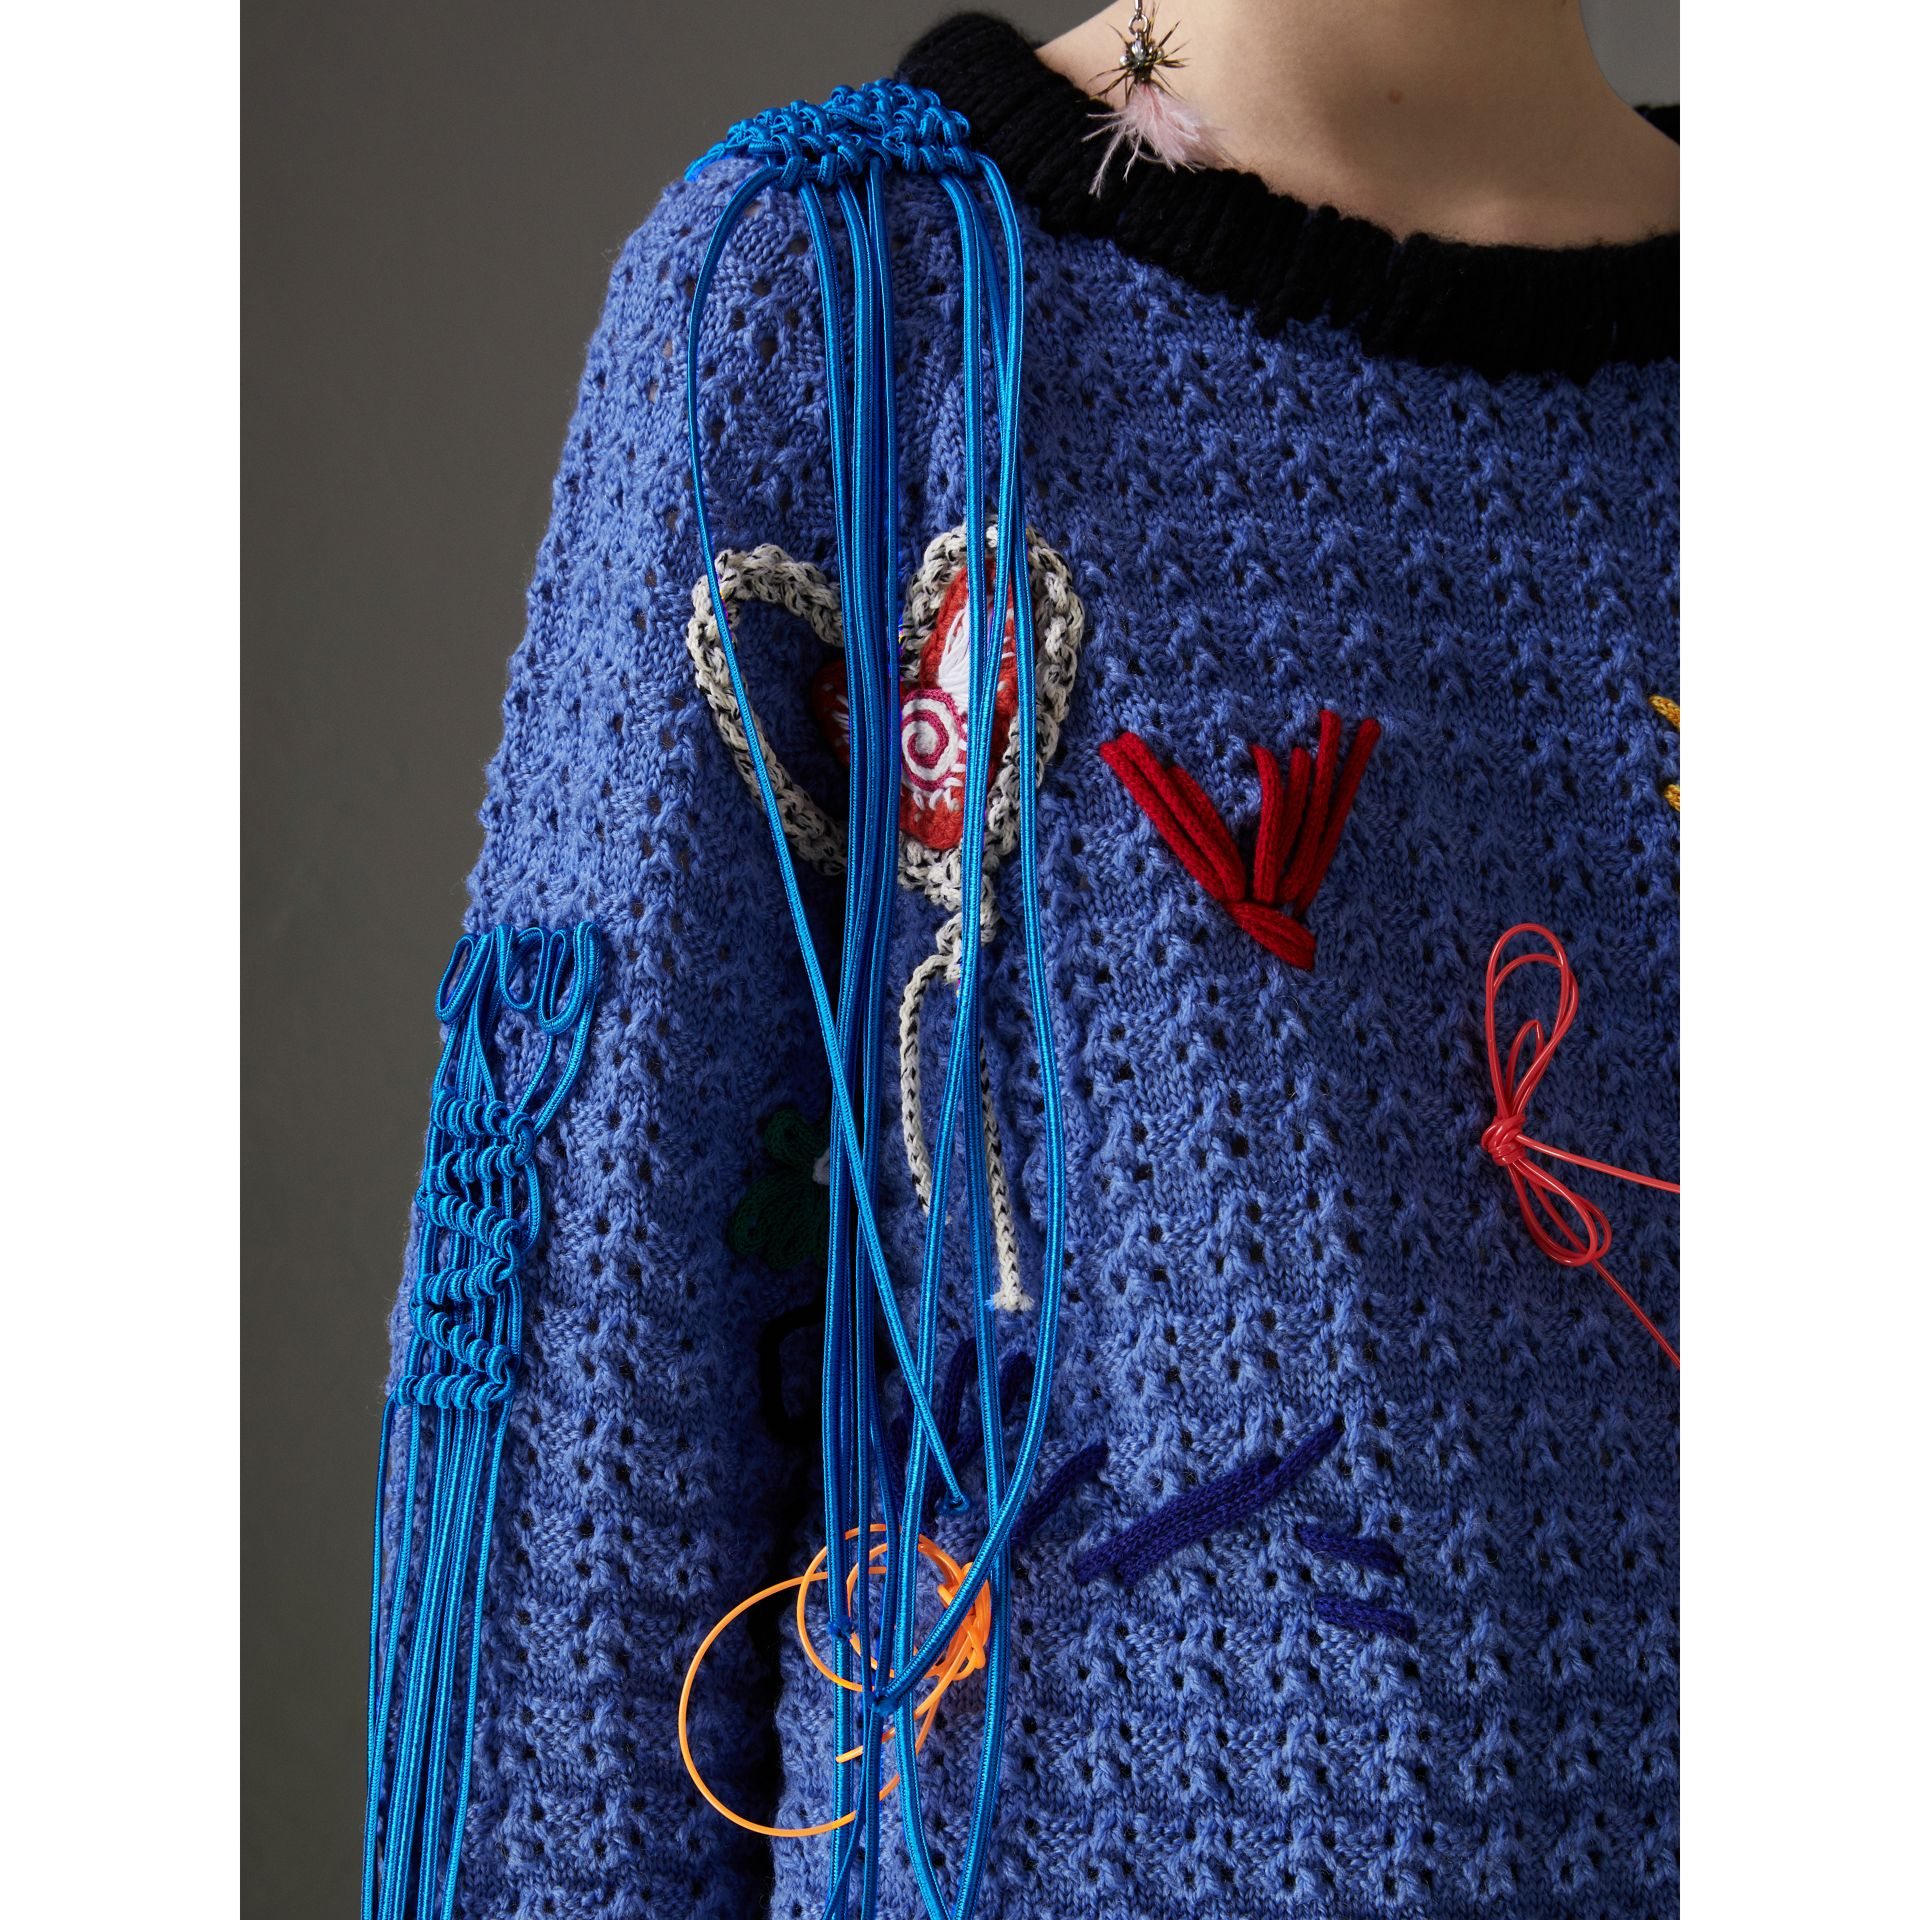 Embellished Wool Lace Sweater in Blue - Women | Burberry - gallery image 1